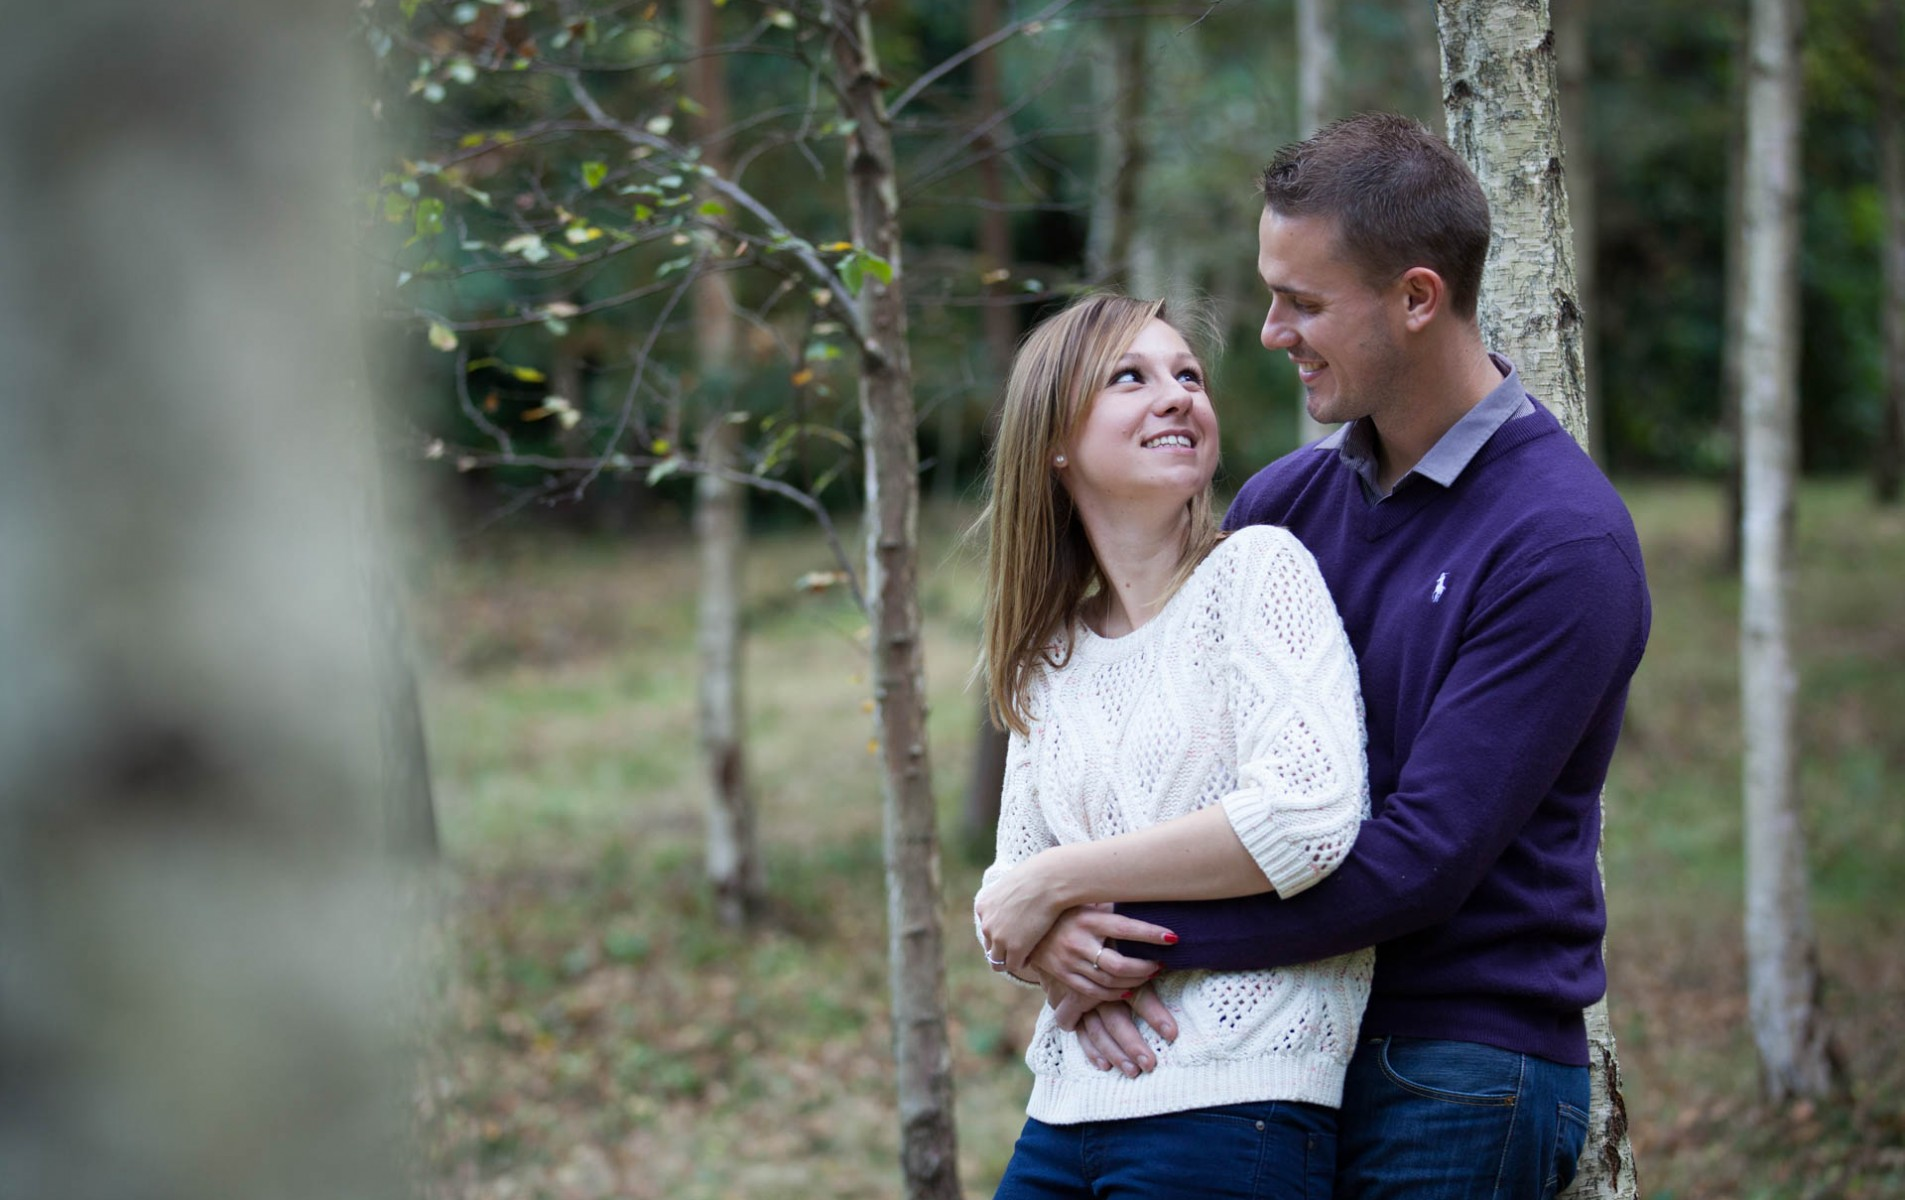 Virginia Water Engagement Shoot - Kirsty and Ian